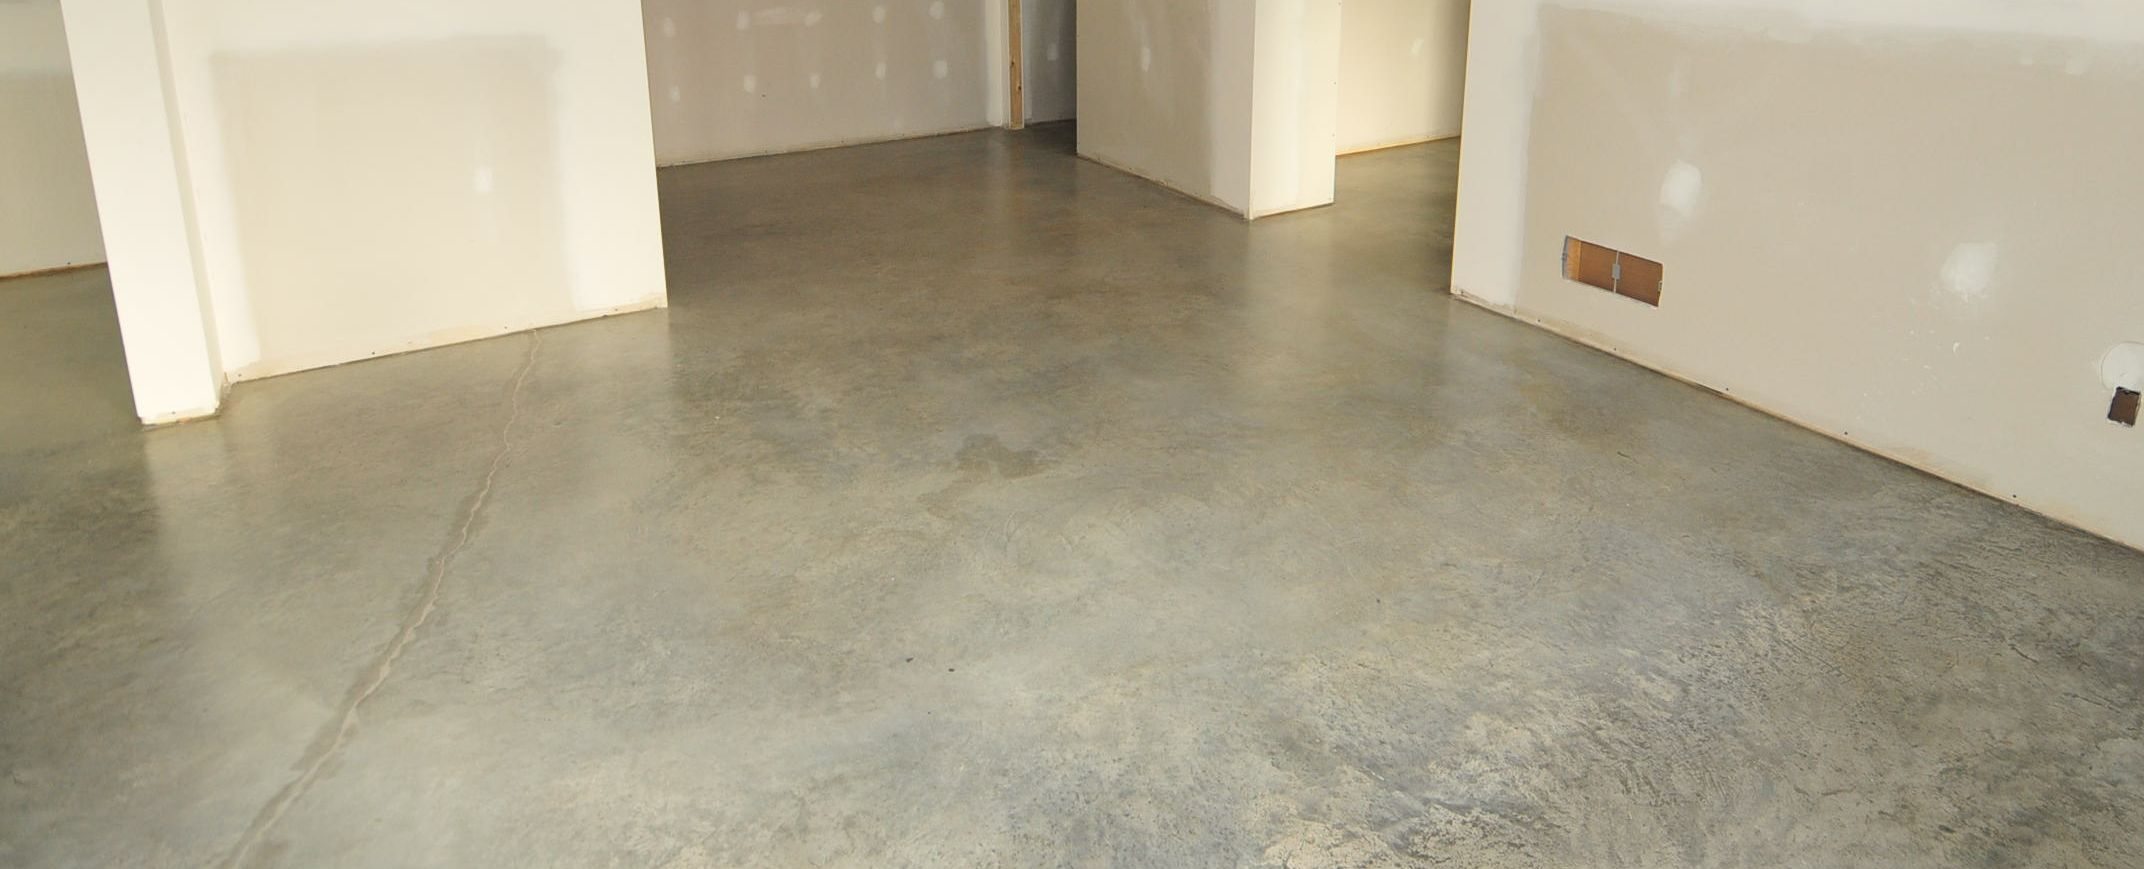 Existing Concrete Basement Floors Look Amazing Naturally A Quick - Cost effective basement flooring